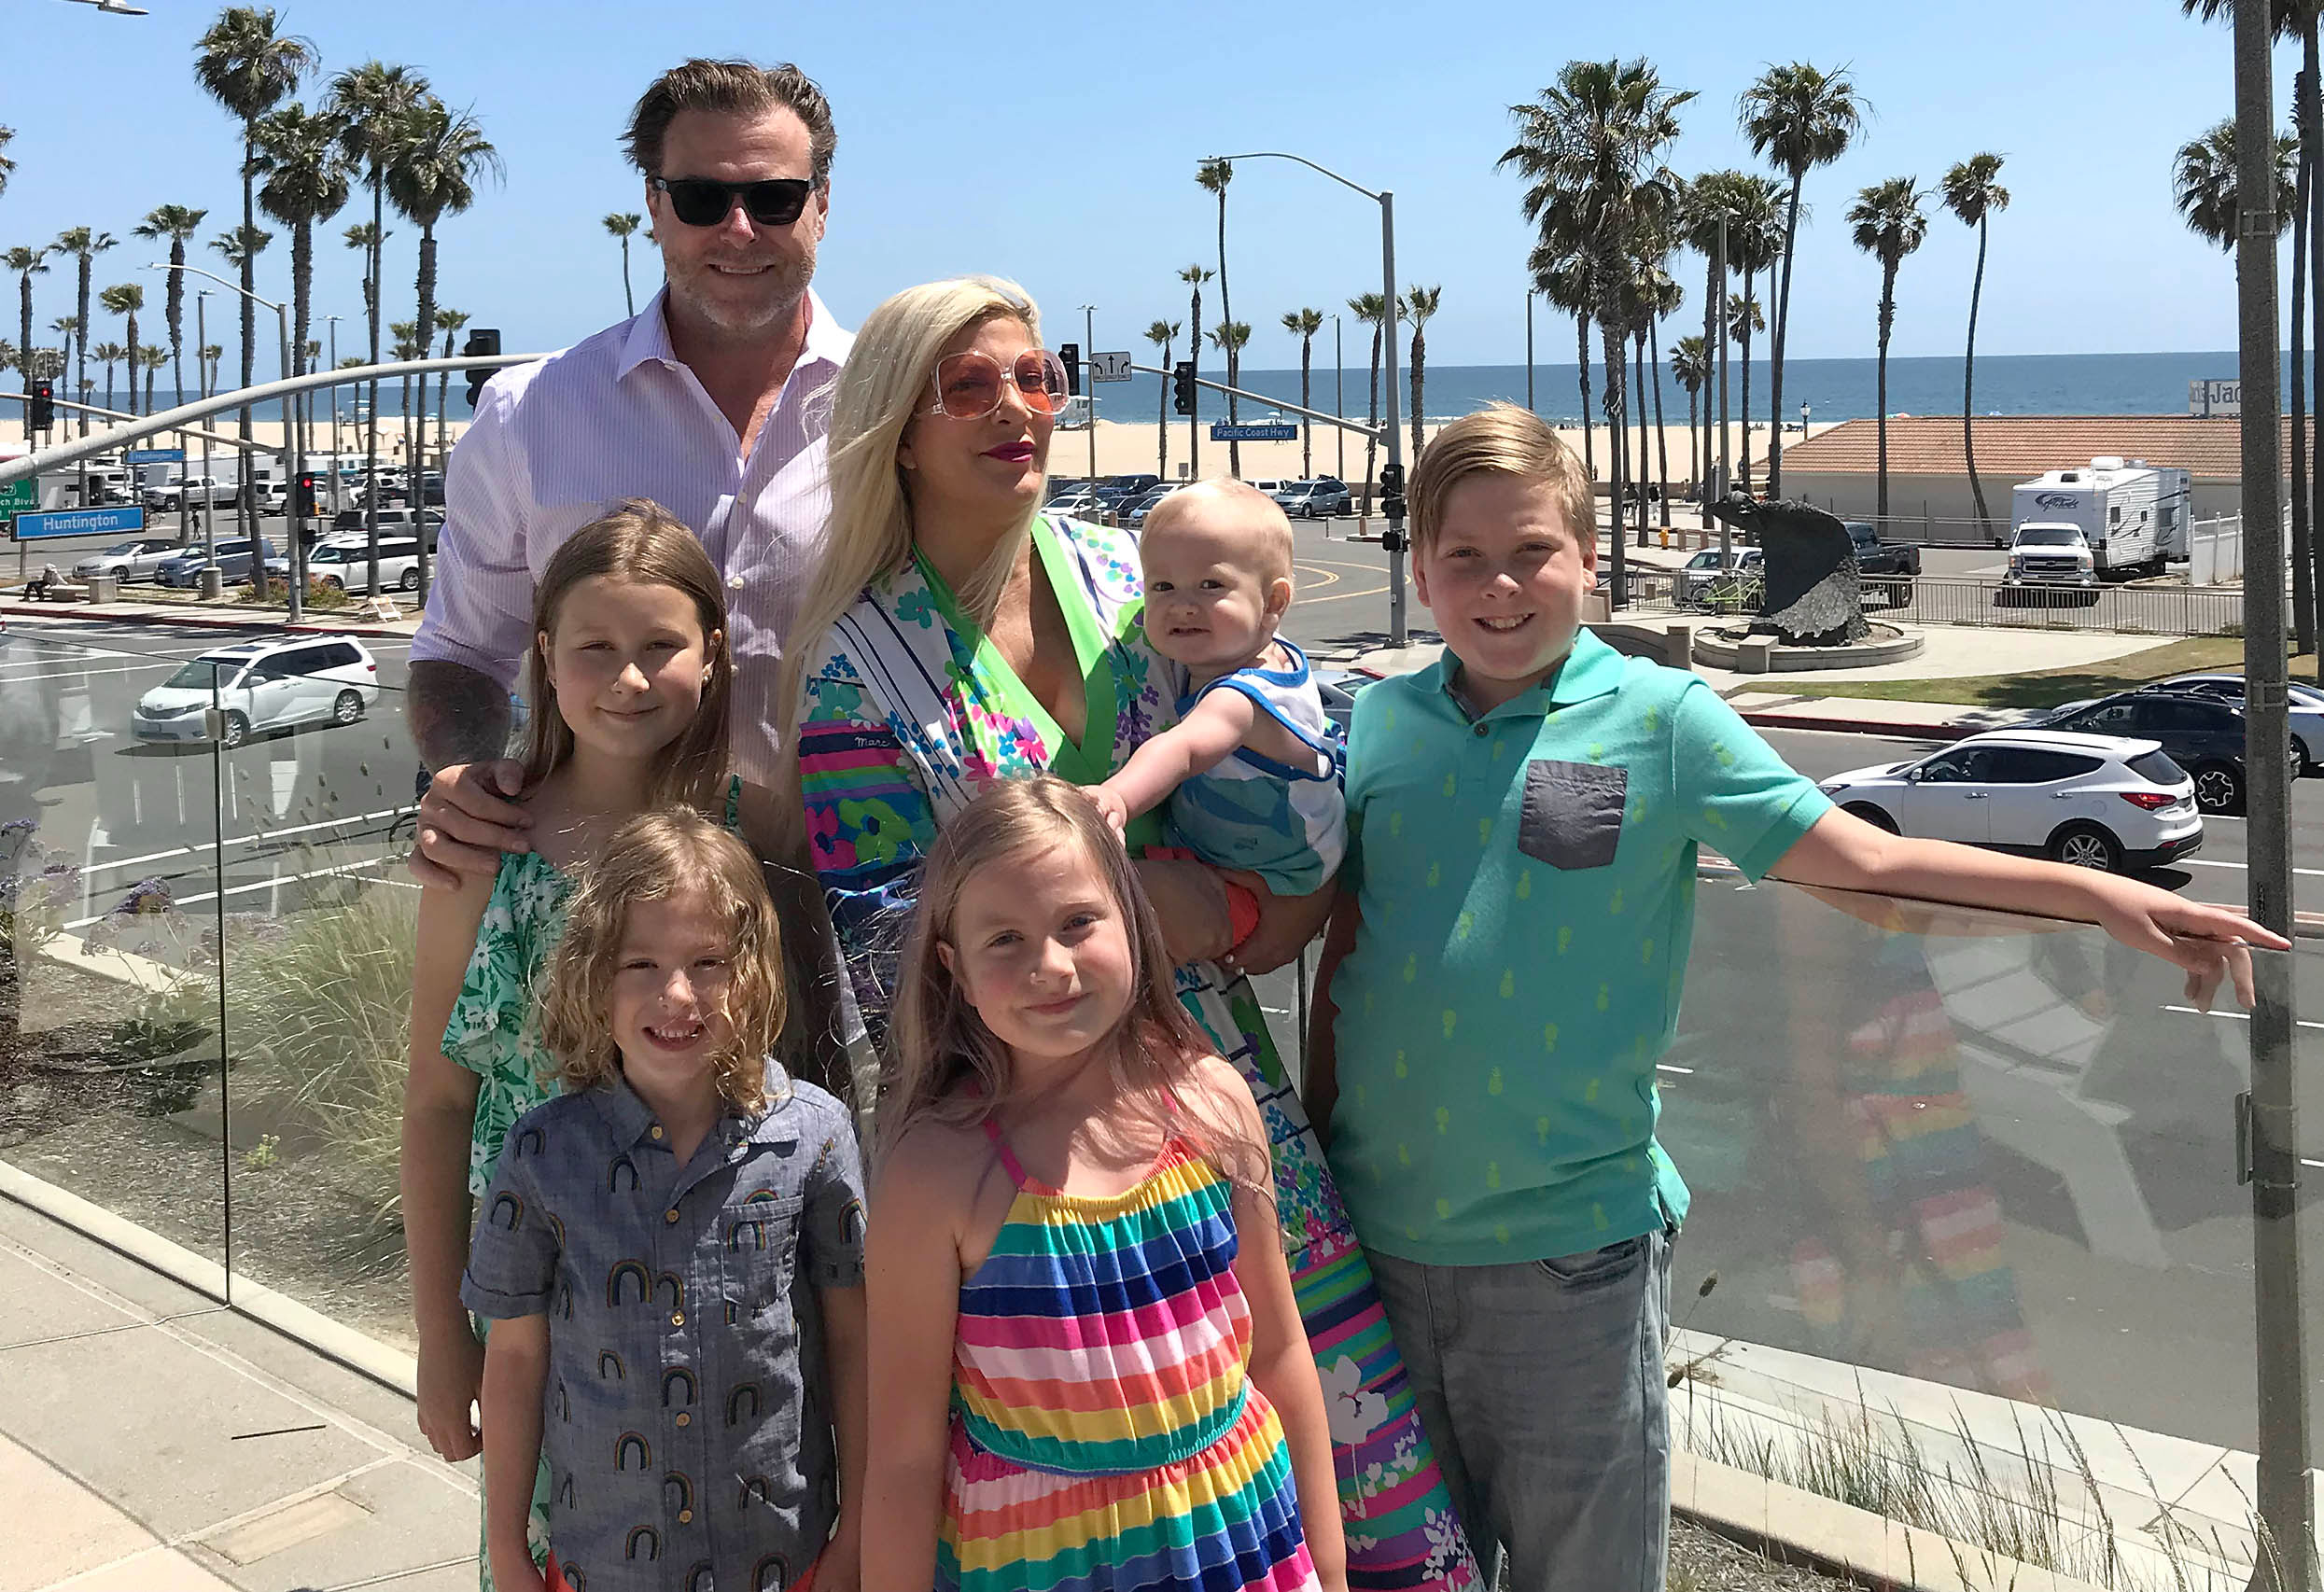 Tori spelling mothers day pics